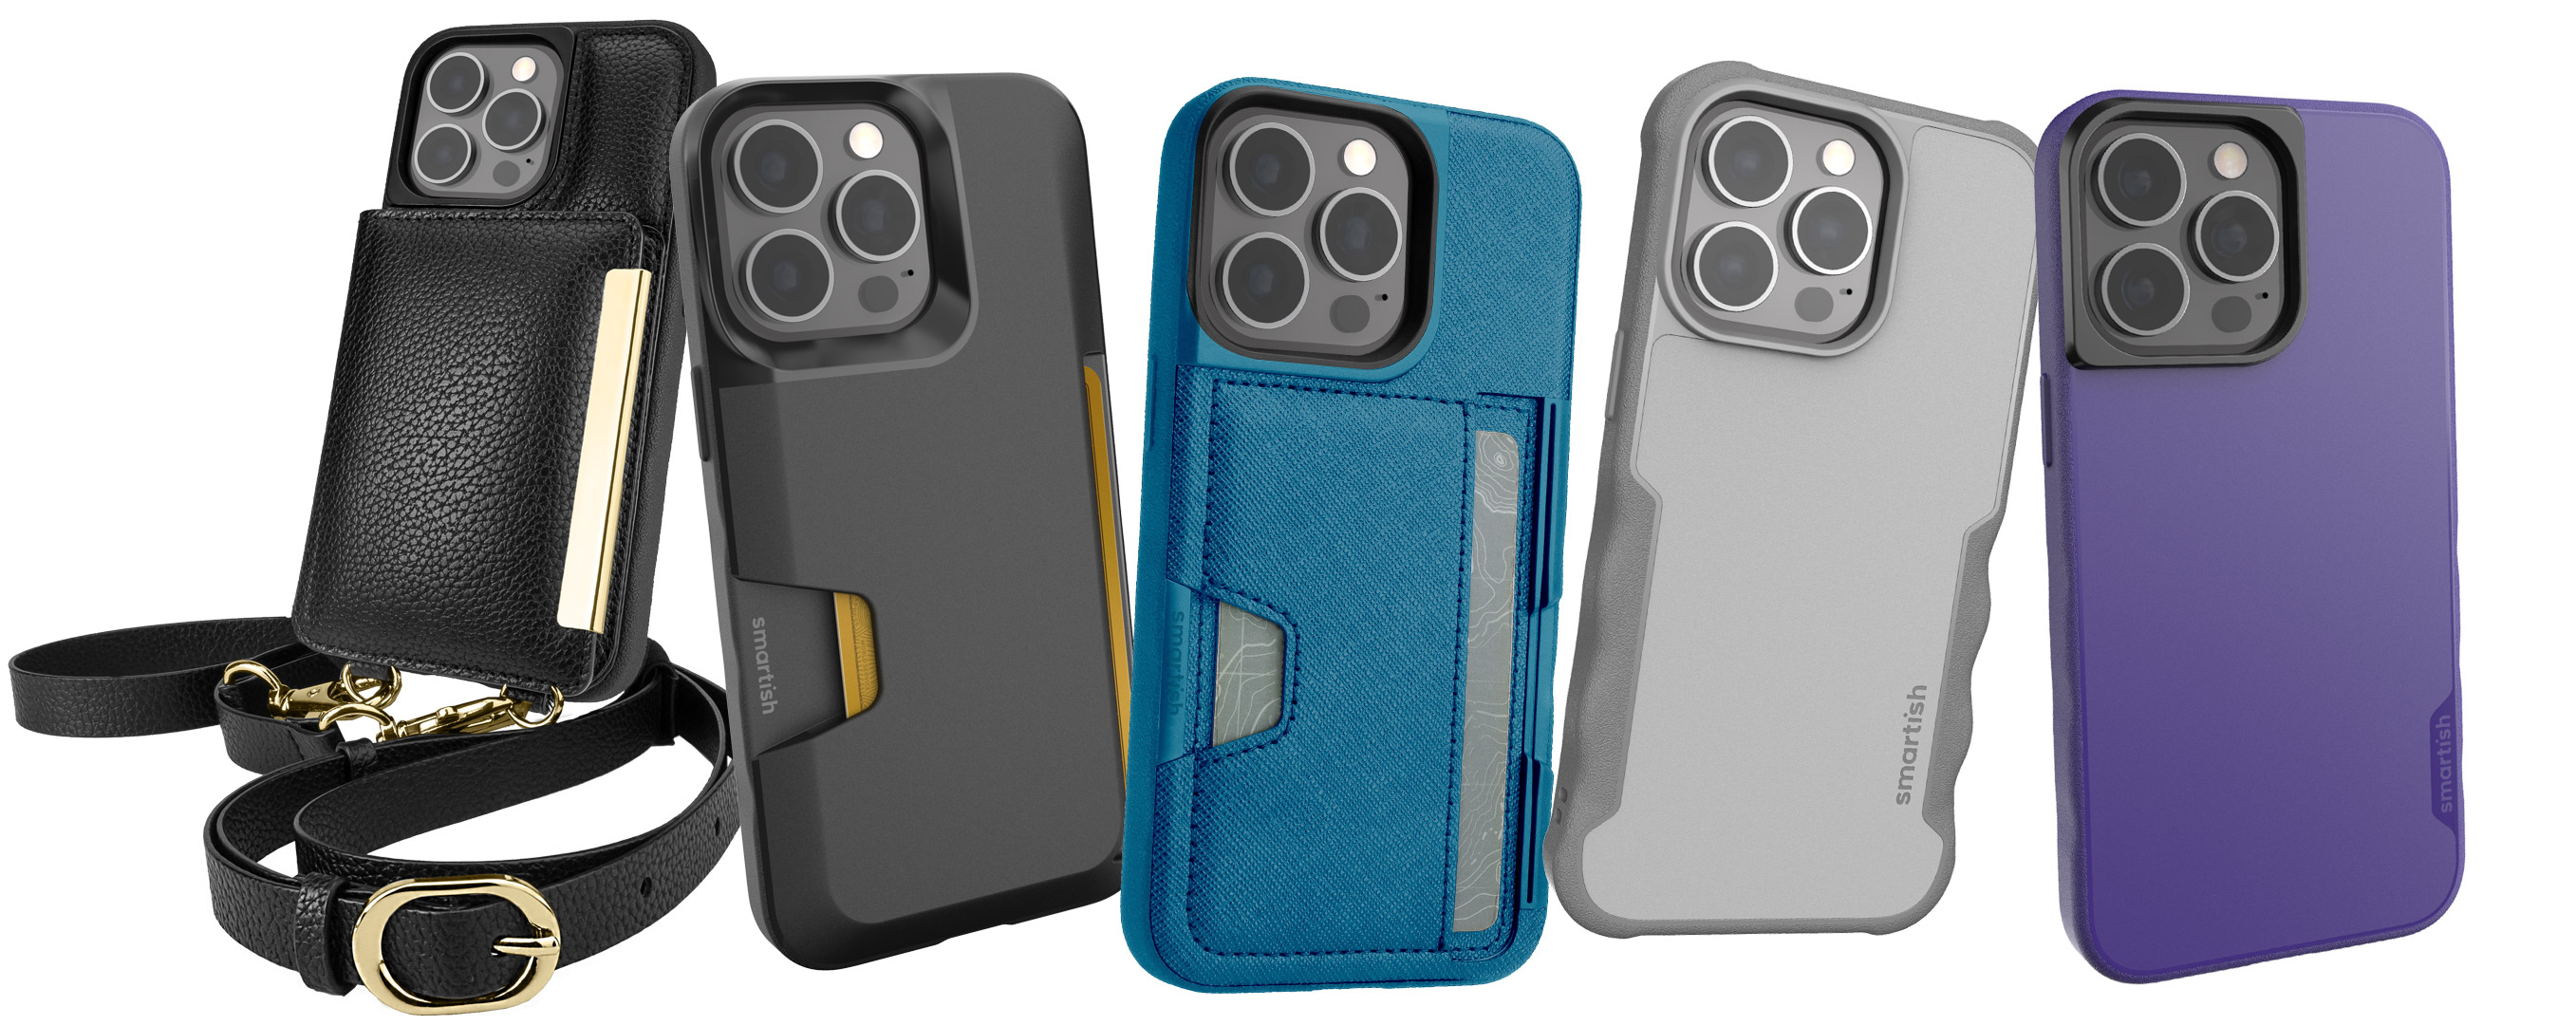 Smart case for iPhone 13